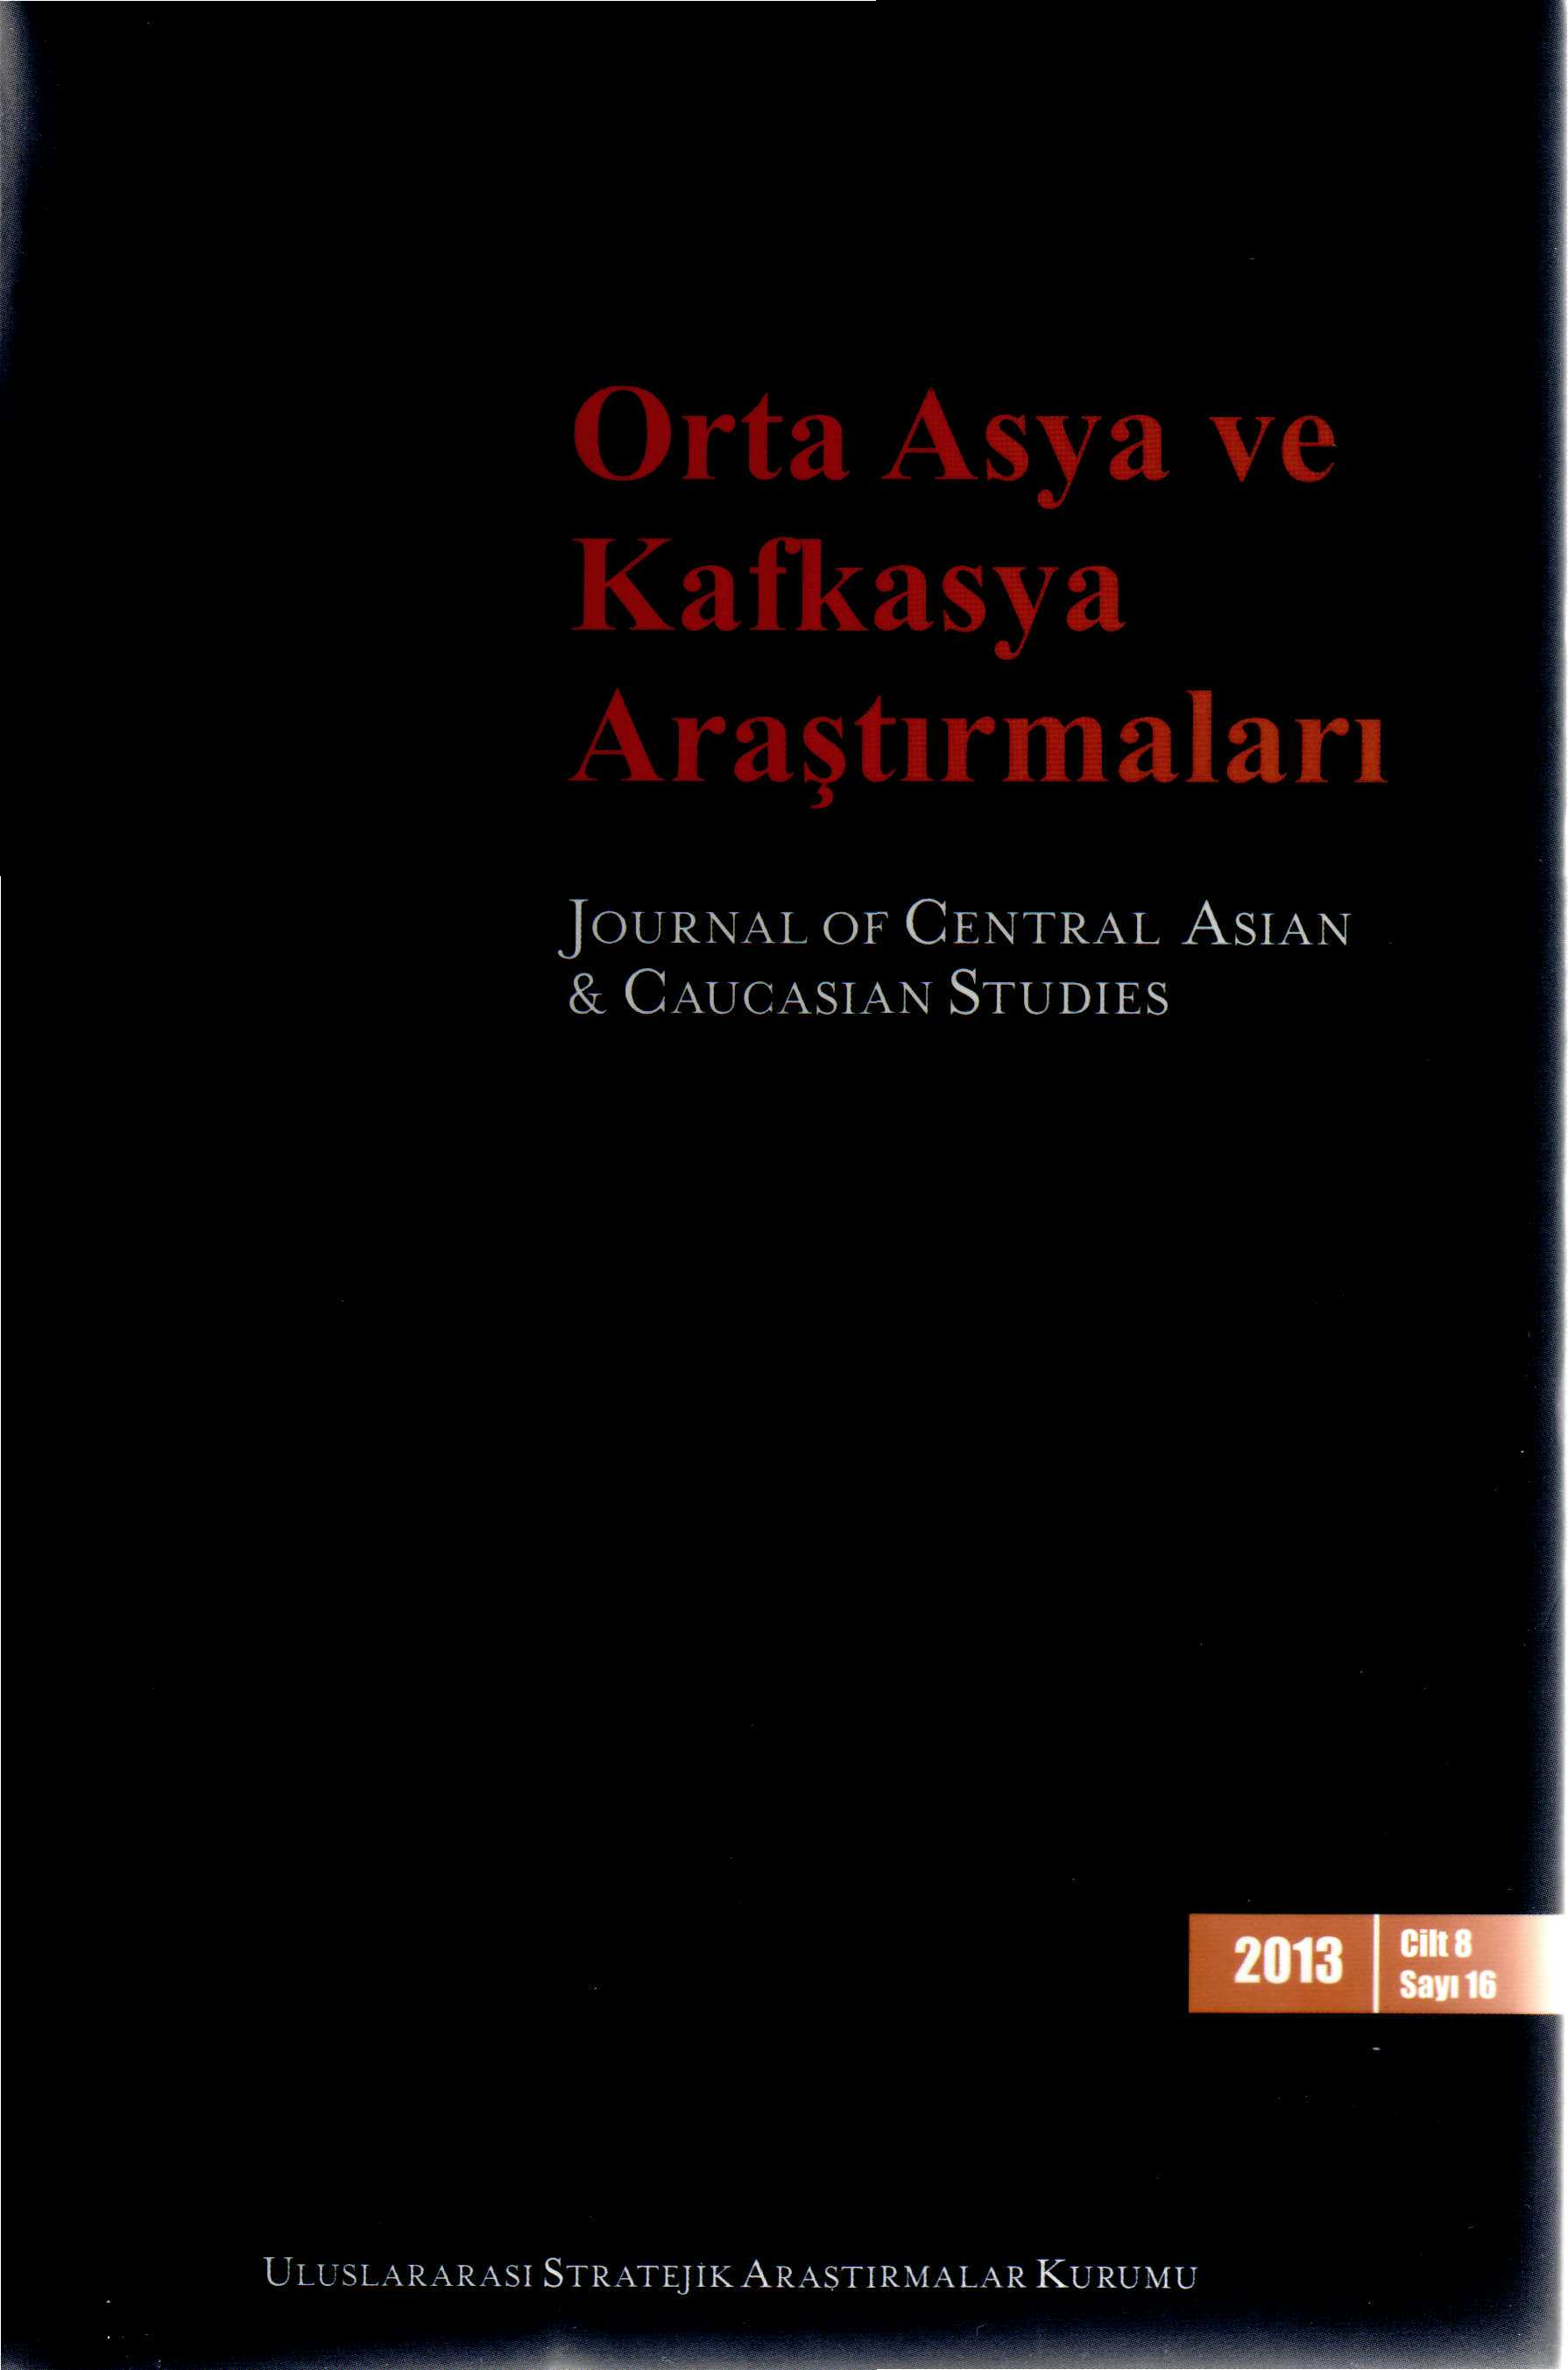 Orta Asya ve Kafkasya â up JOURNAL OF CENTRAL ASIAN &